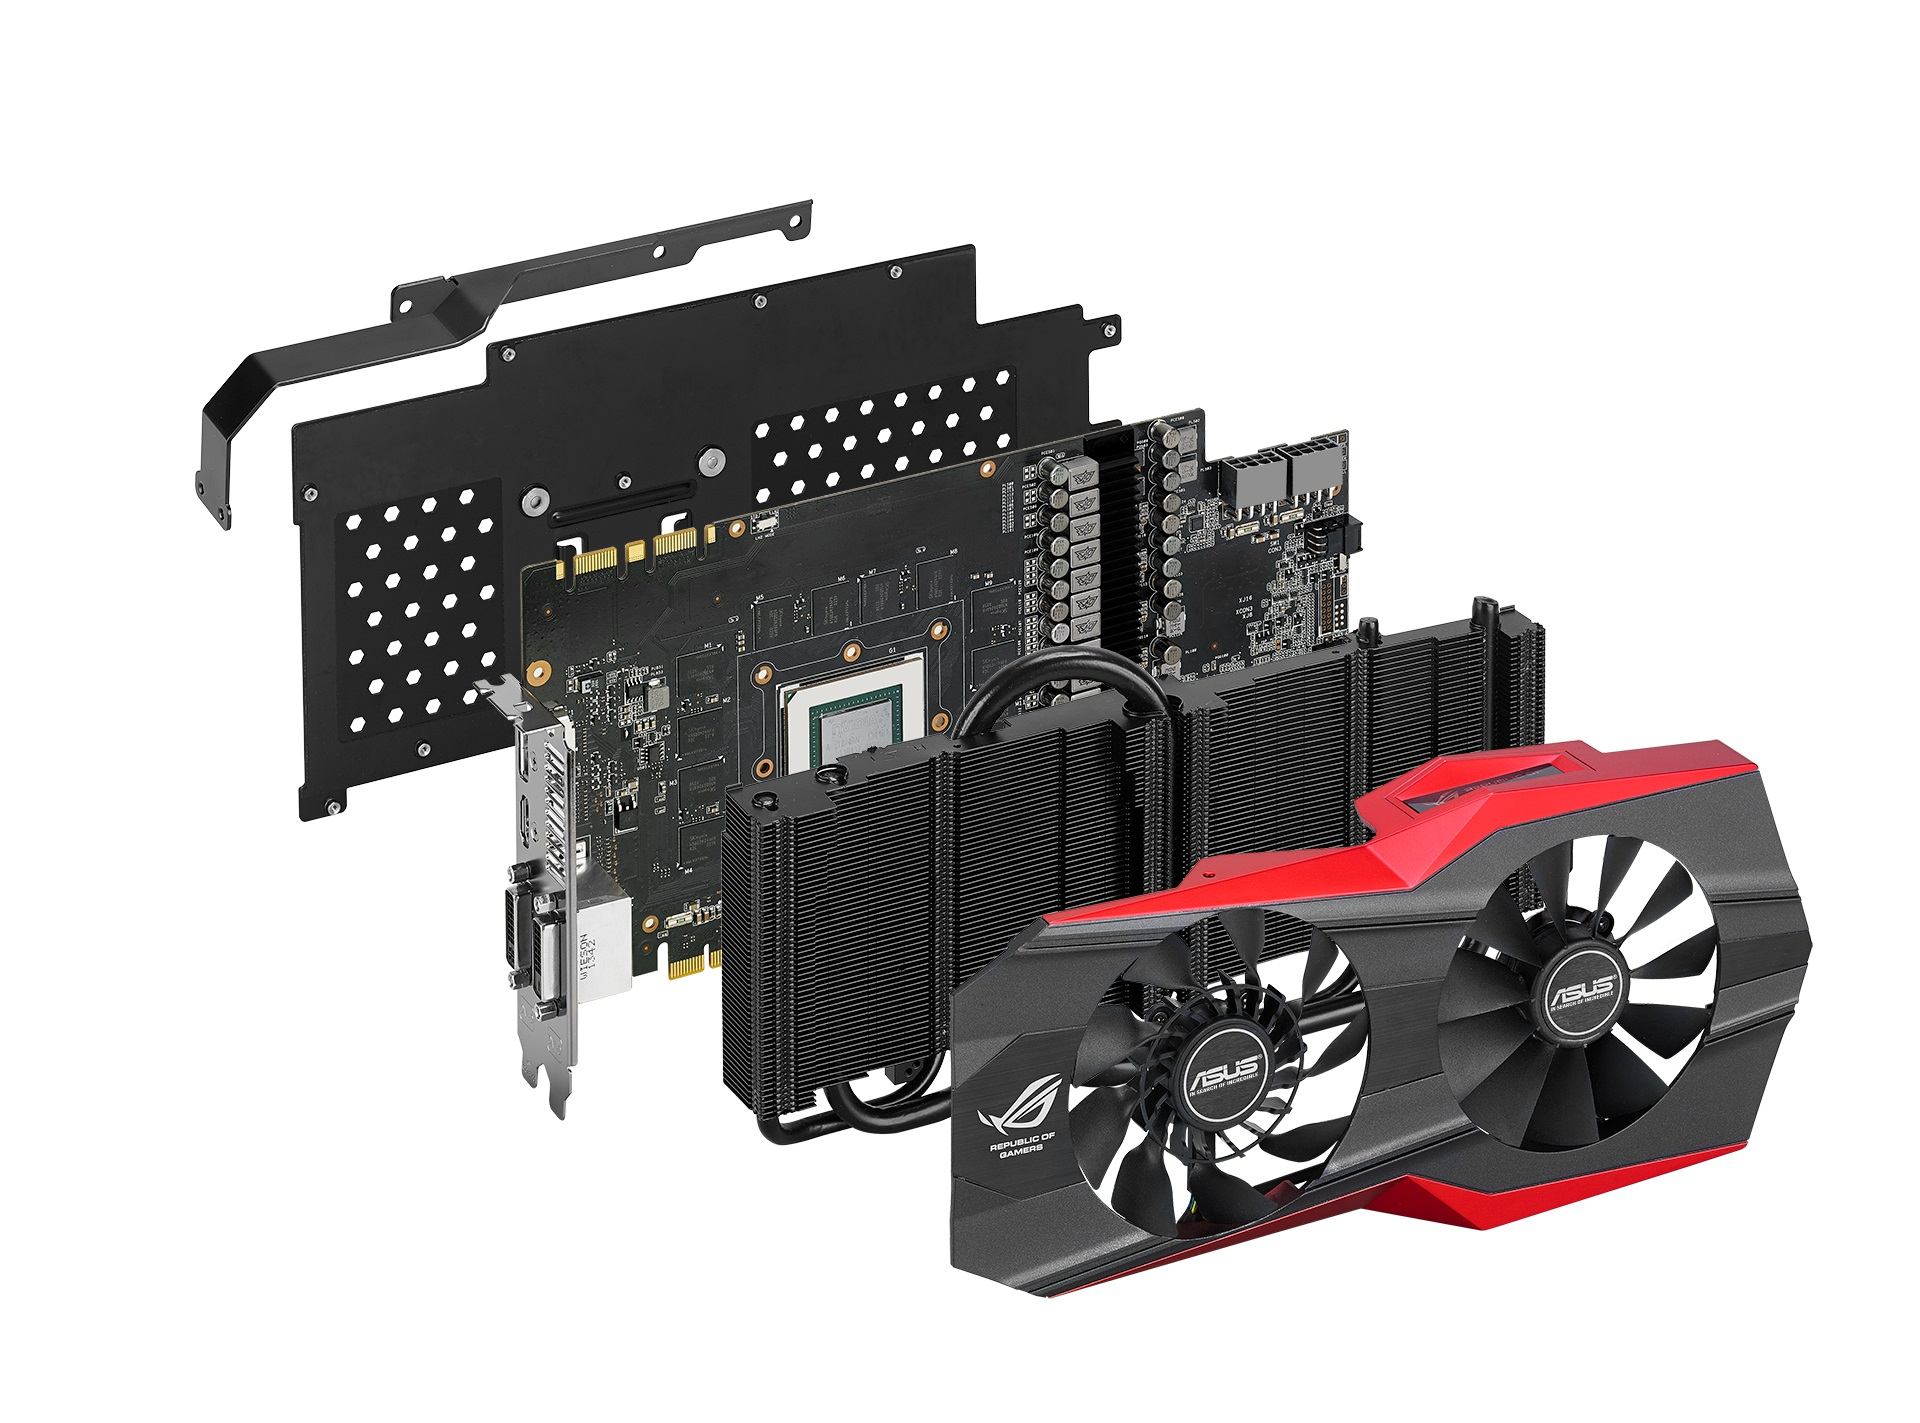 ASUS prepara due nuove schede video ROG: la Matrix R9 290X e la Matrix GTX 780 Ti